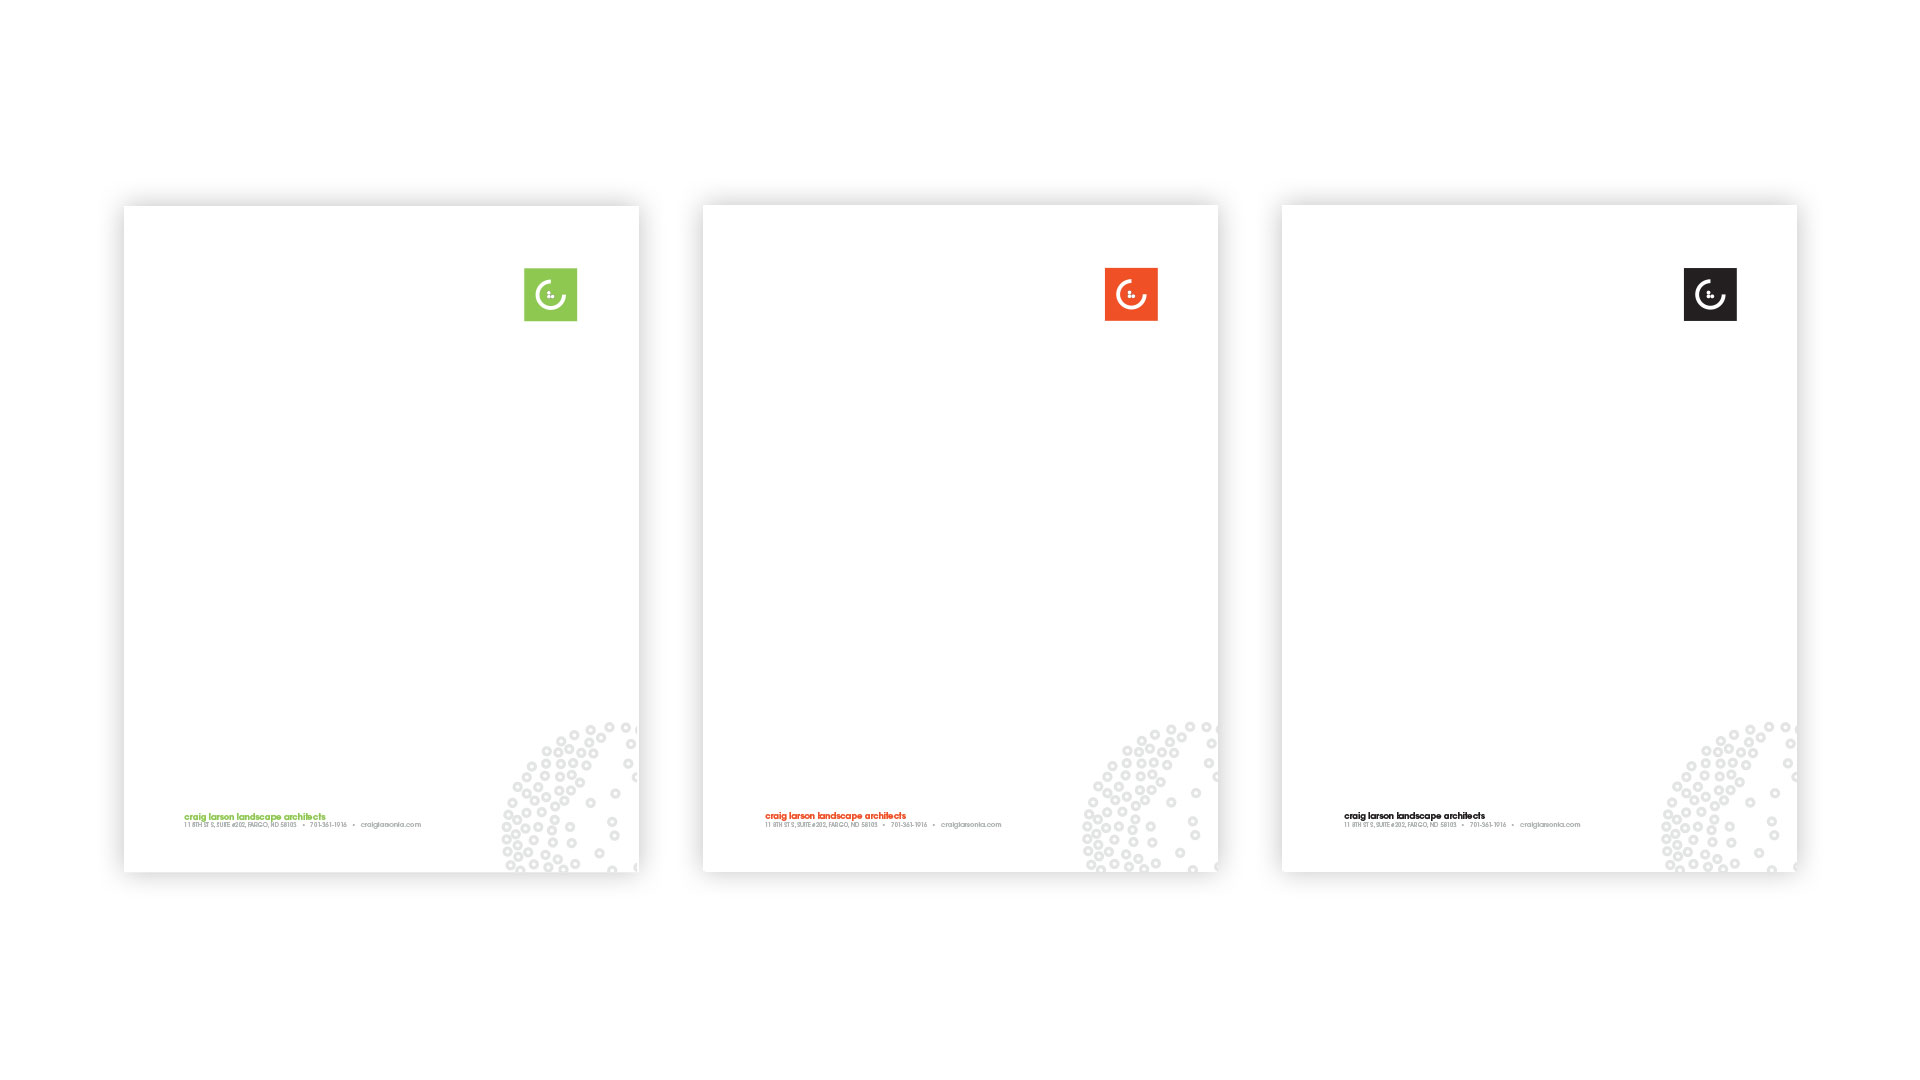 Green, red-orange, and black versions of CLLA branded letterhead